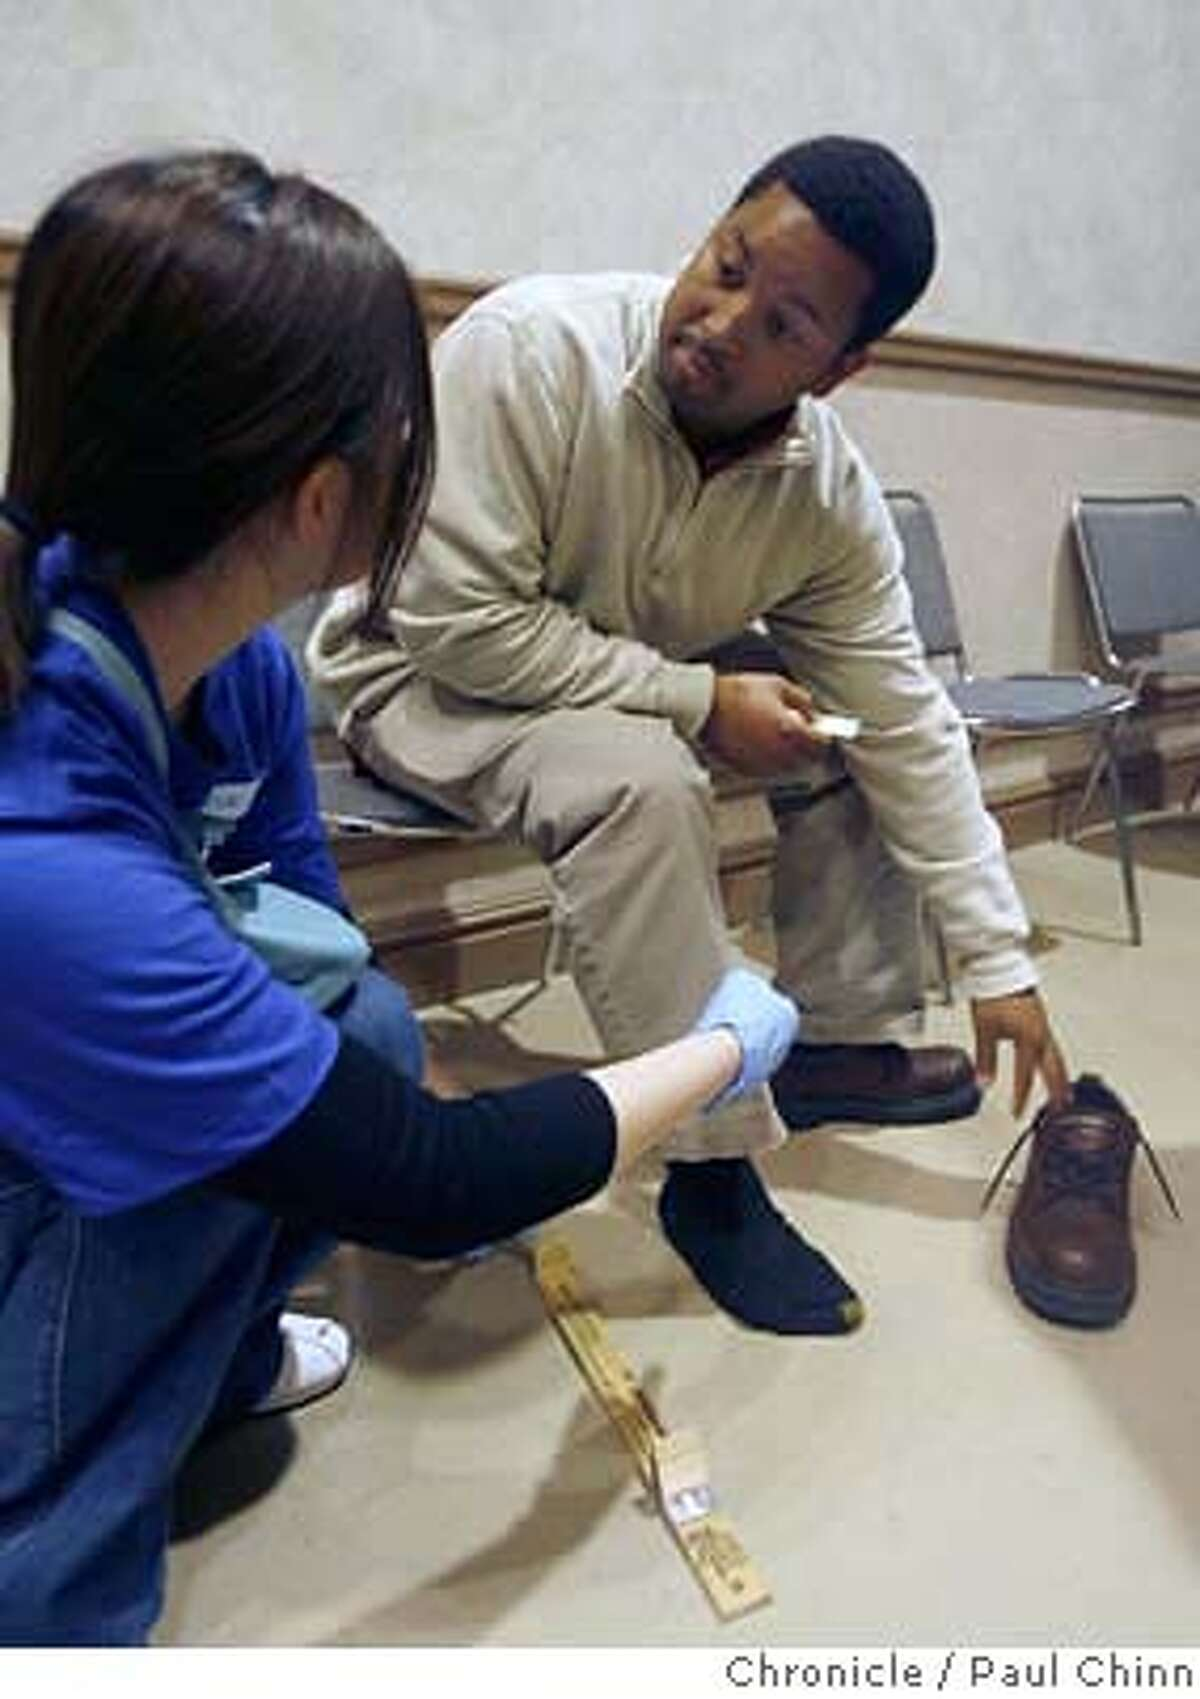 Corey Middleton (right) has his feet measured by a volunteer before receiving his free pair of shoes. More than 2,000 pairs of shoes were donated and given to homeless clients participating in the monthly Homeless Connect program at the Bill Graham Civic Auditorium in San Francisco, Calif. on Friday, June 9, 2006. PAUL CHINN/The Chronicle **Corey Middleton MANDATORY CREDIT FOR PHOTOGRAPHER AND S.F. CHRONICLE/ - MAGS OUT